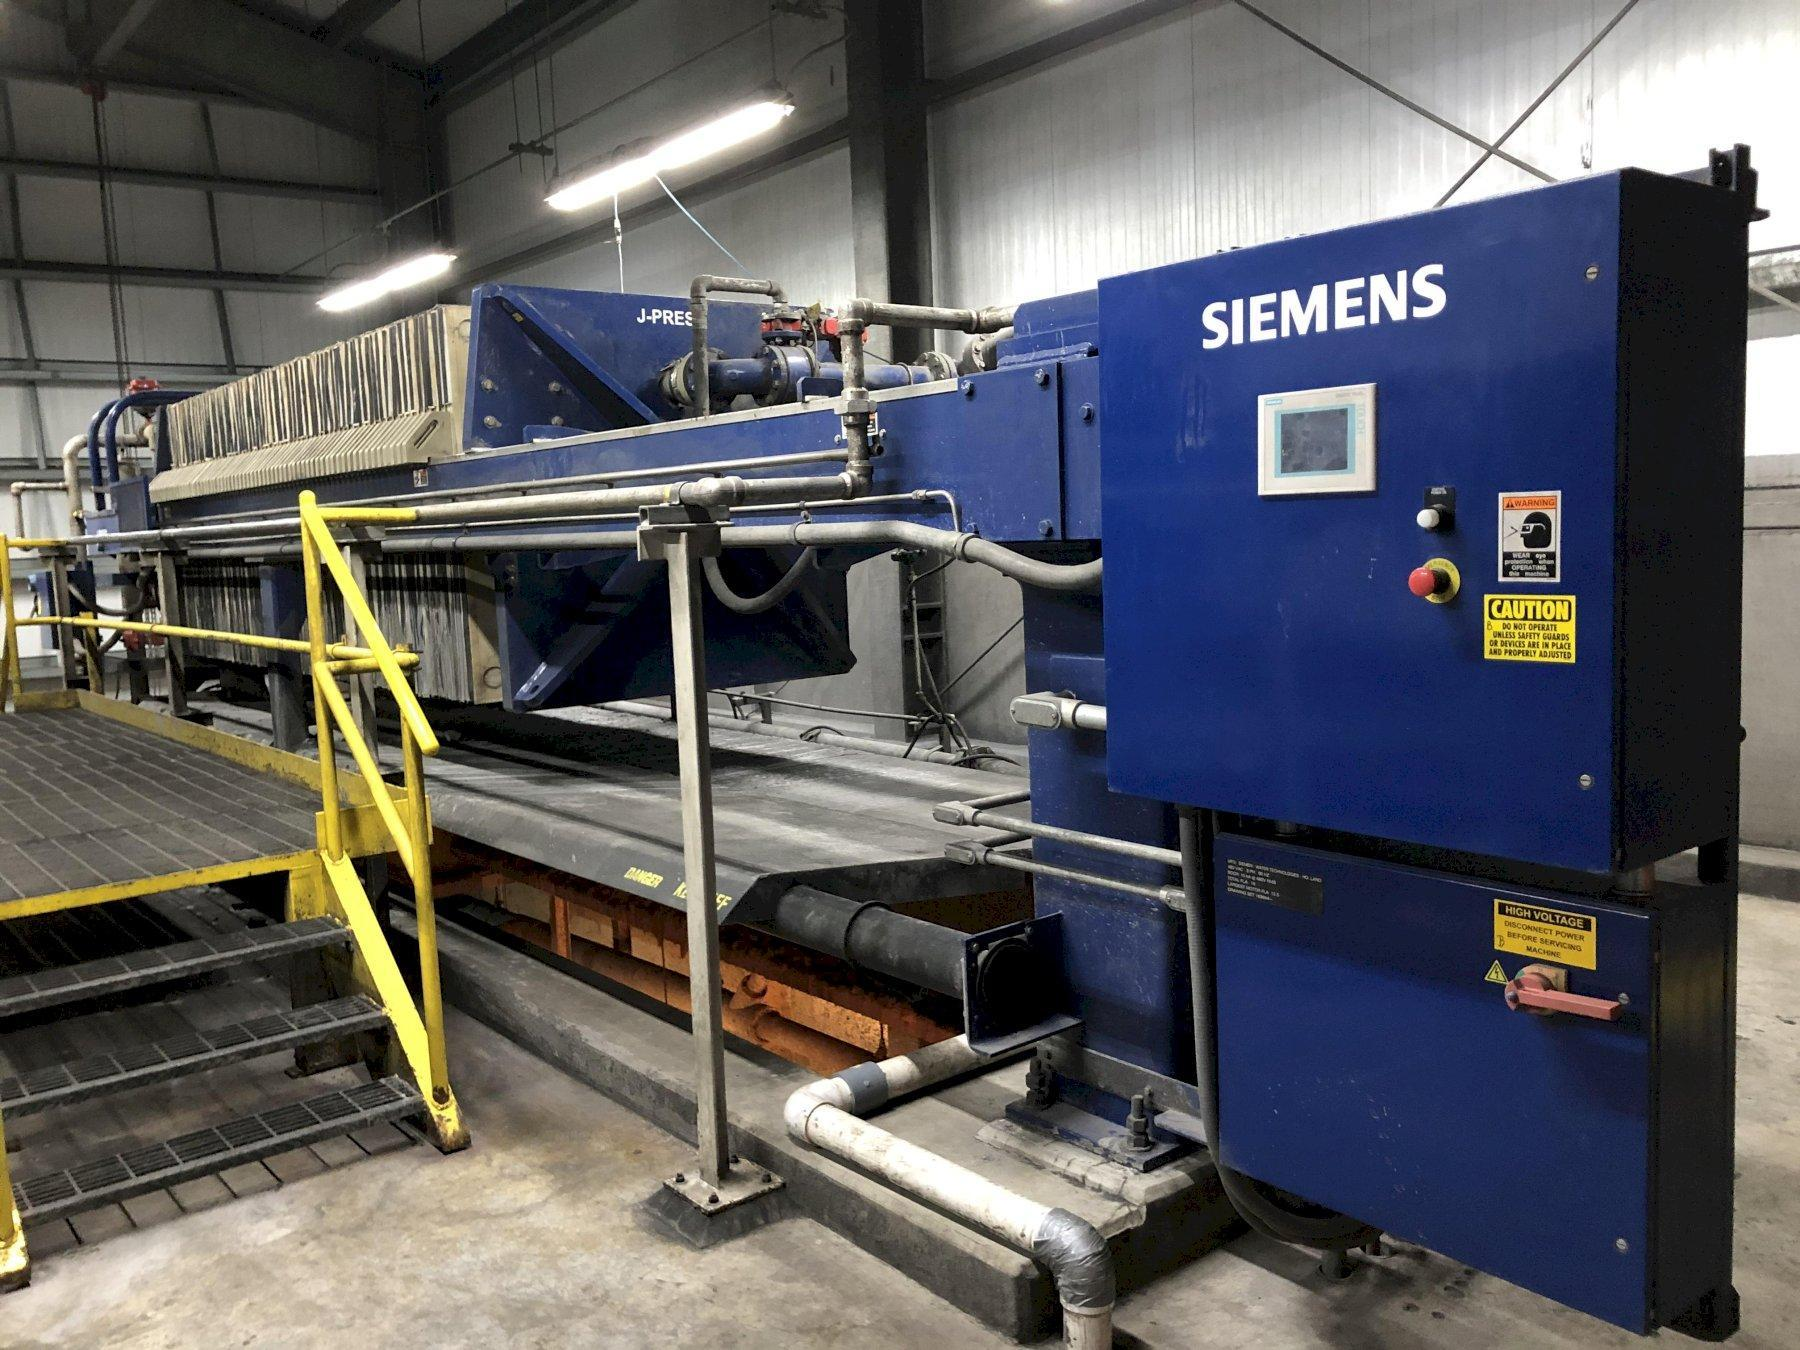 Siemens model 1500n32-64/90-125/175sylc 1500 mm filter press s/n f008177 with 65- approx. 1500 x 1500 mm filters, Siemens plc controls, side bar suspension